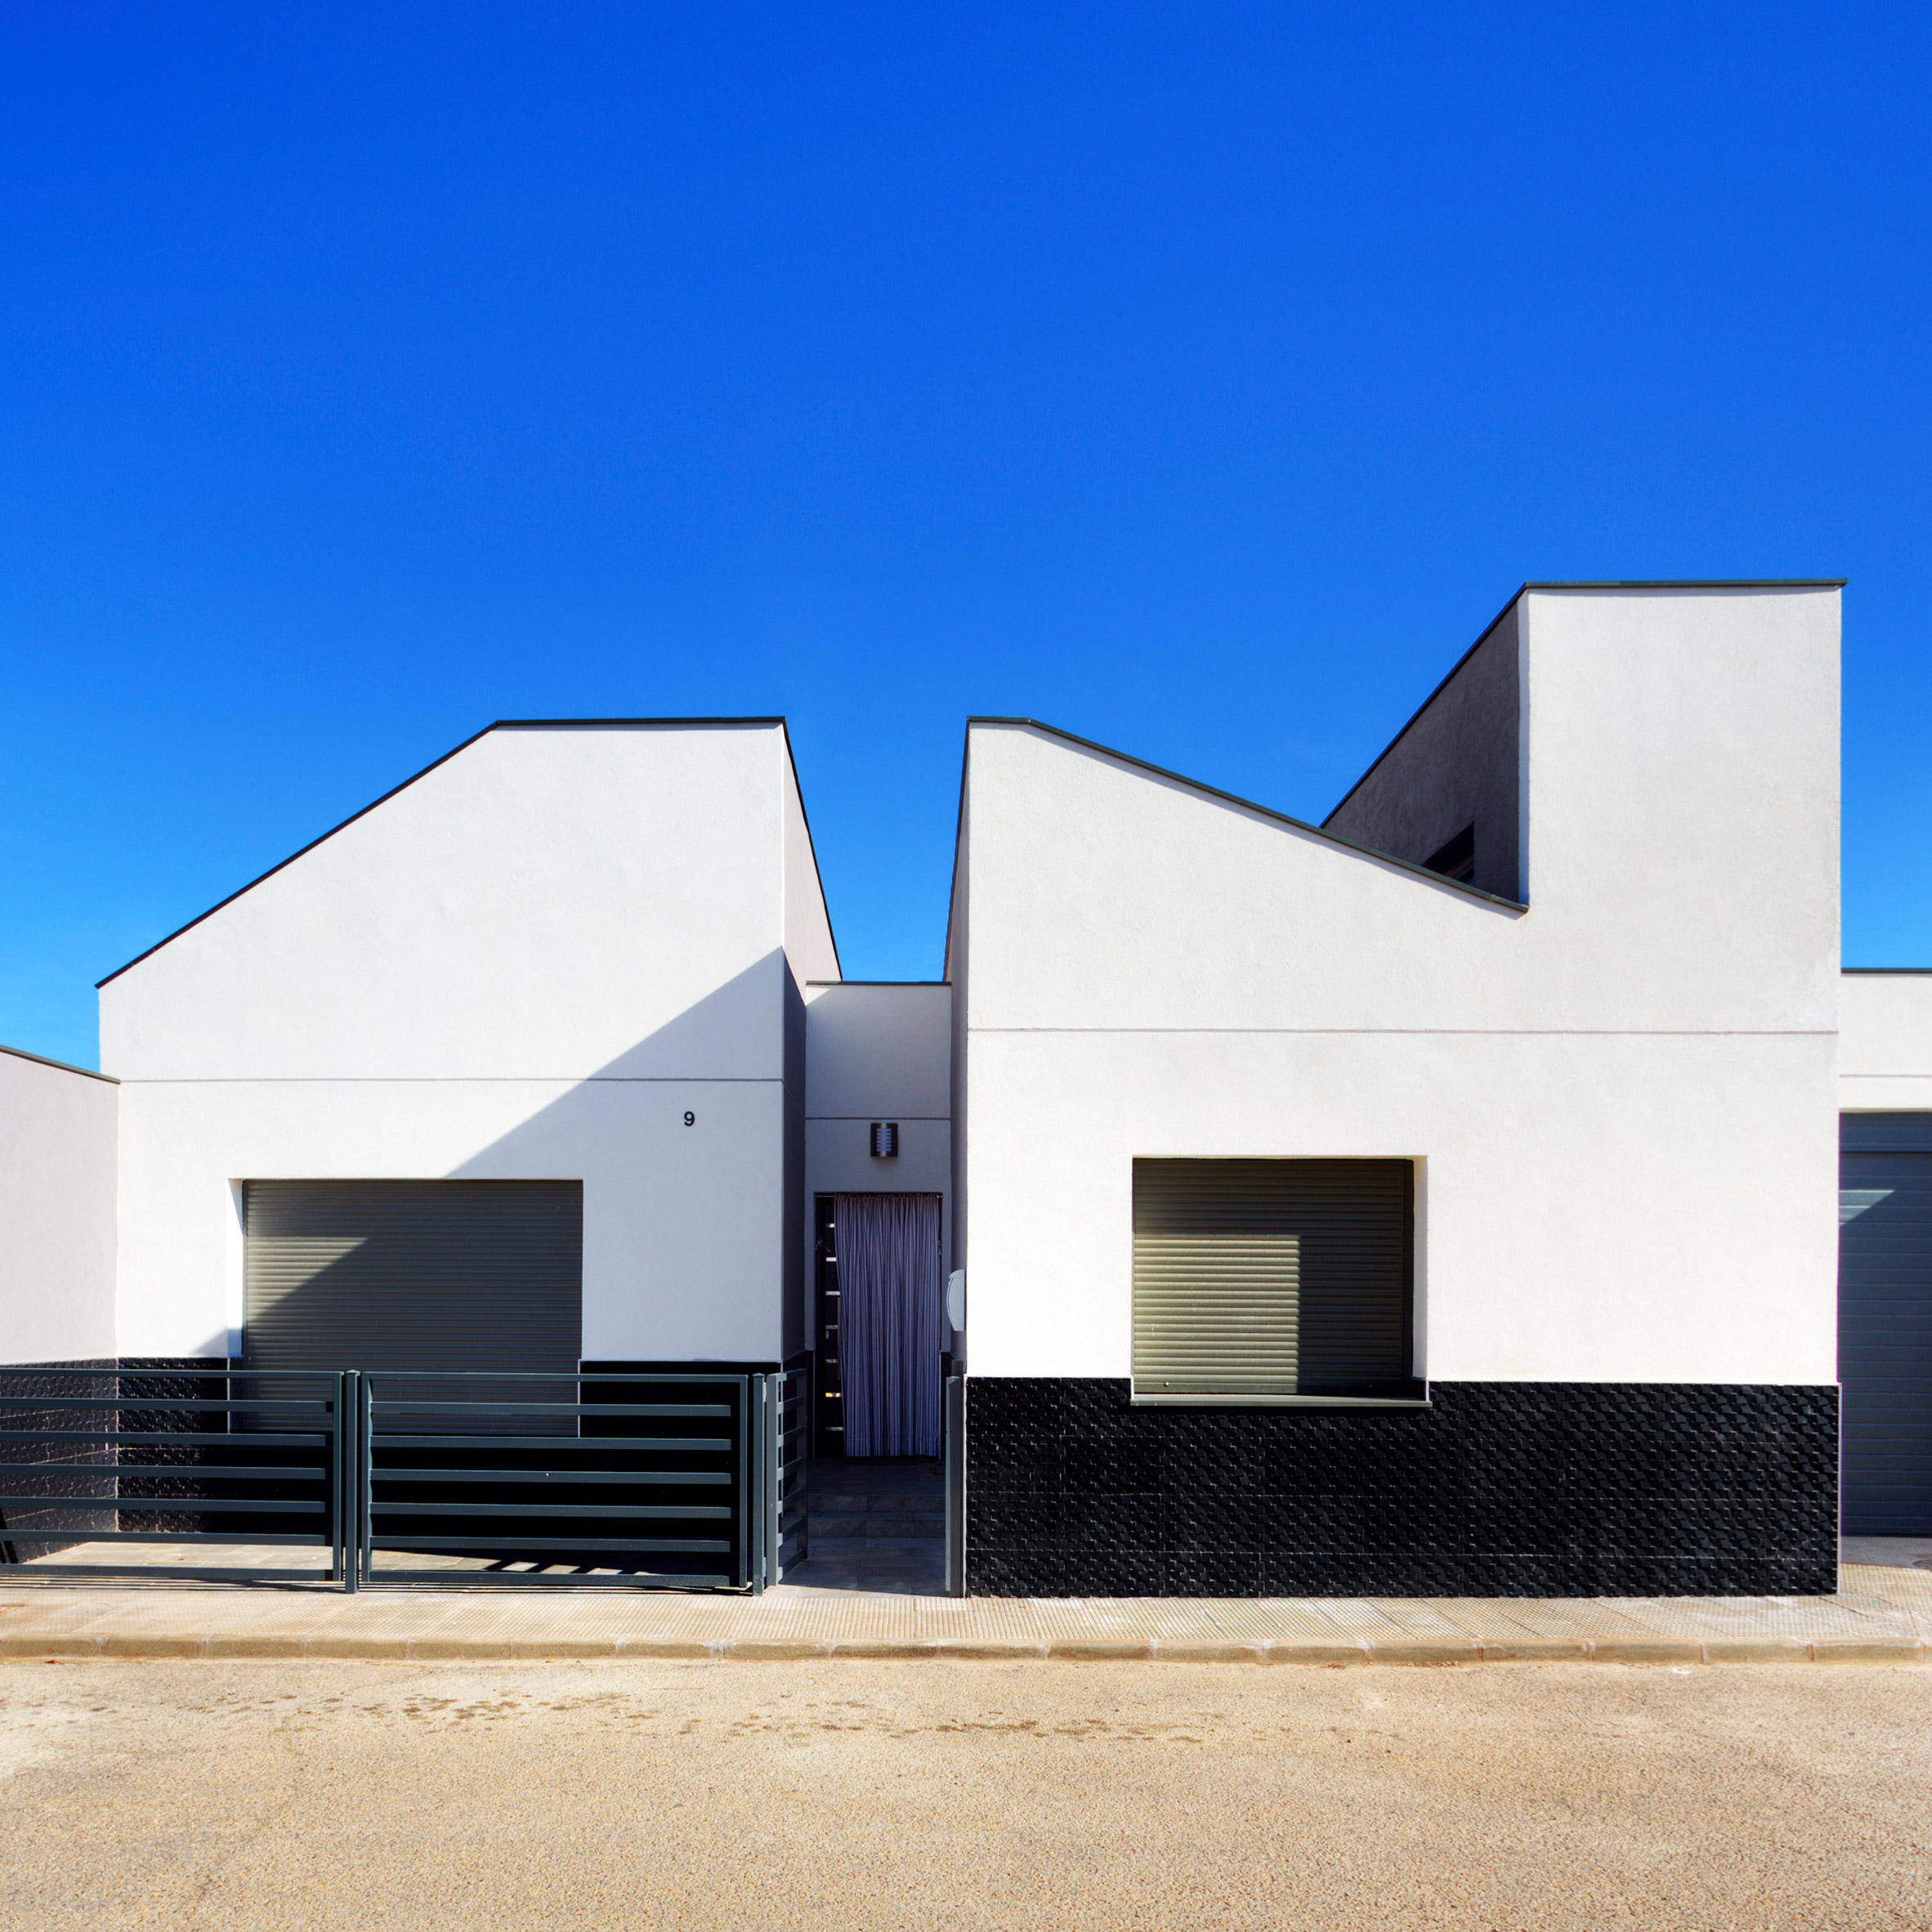 Ooiio Architecture 39 S Casa Arm Appears Cut In Half By A